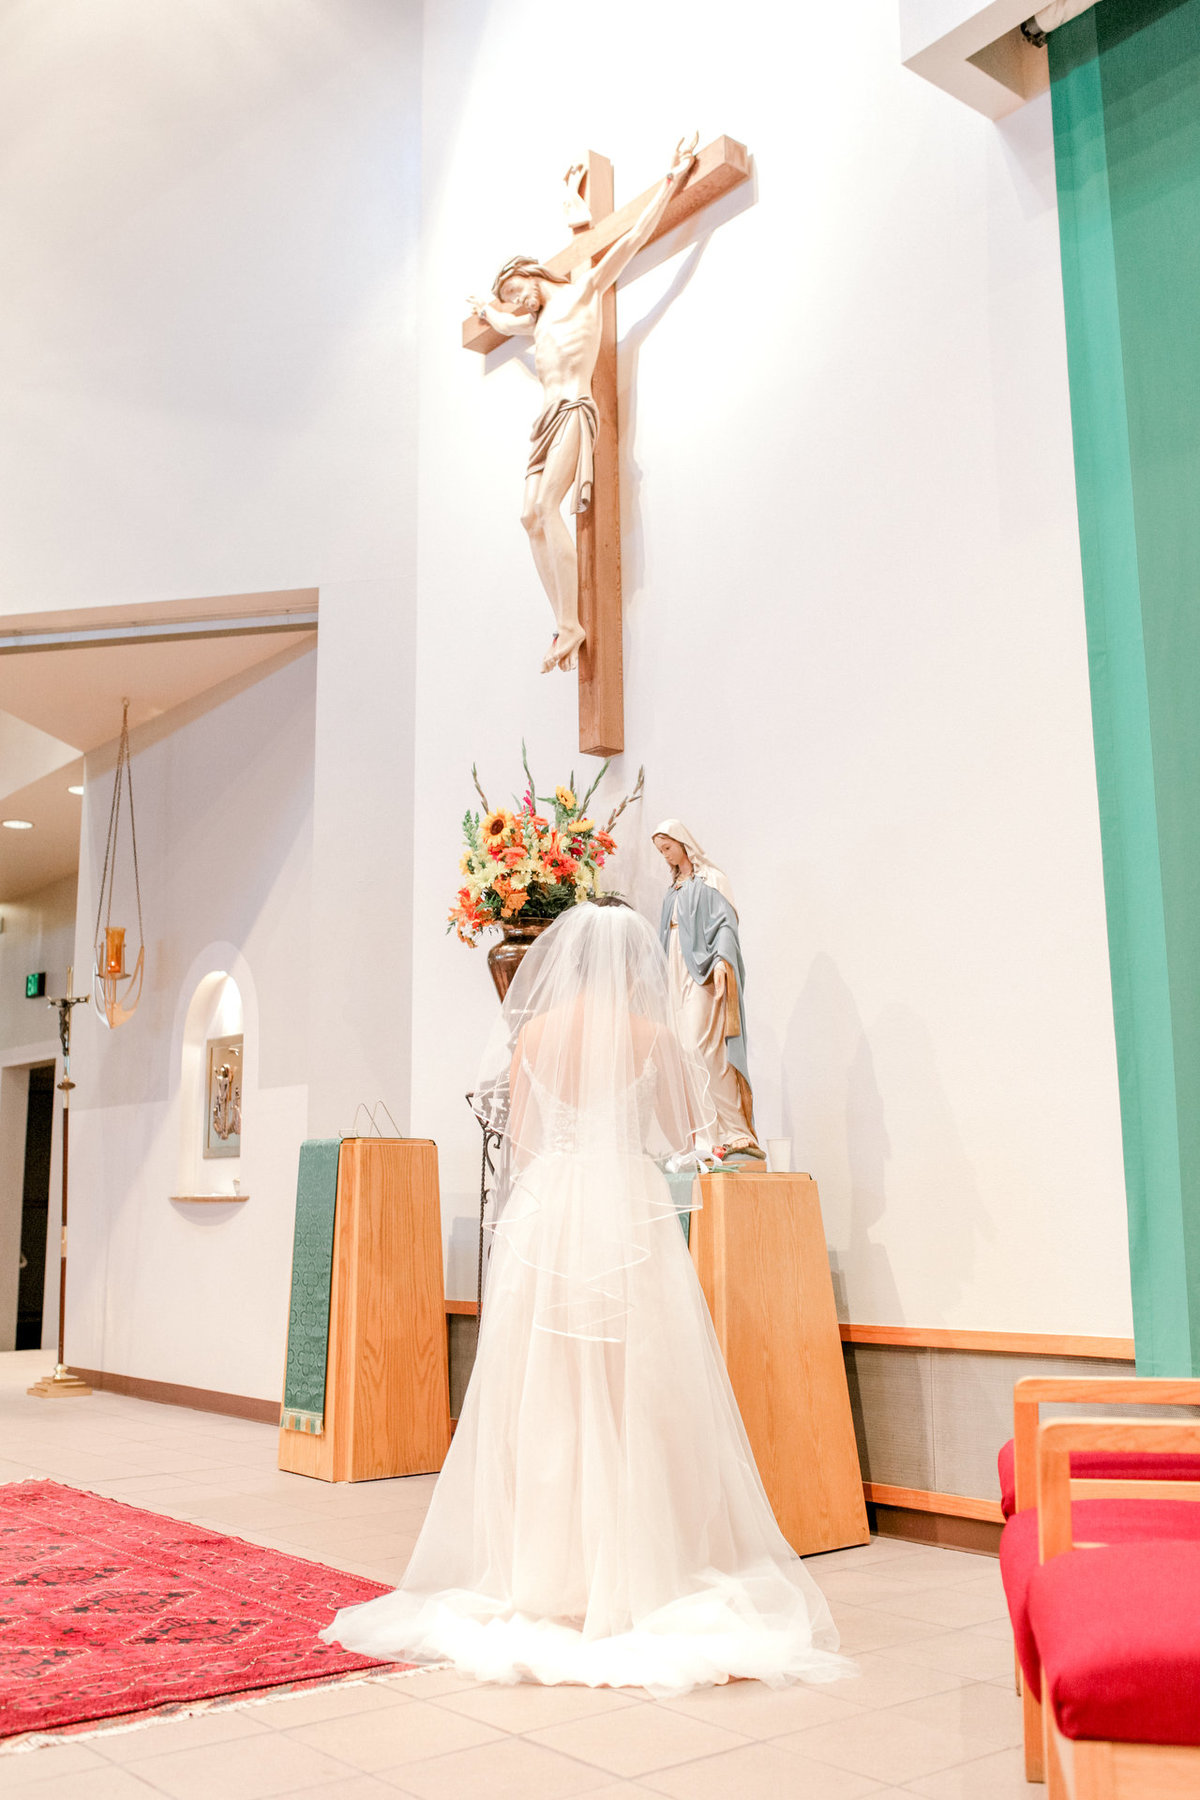 Albuquerque Wedding Photographer_Our Lady of the Annunciation Parish_www.tylerbrooke.com_022